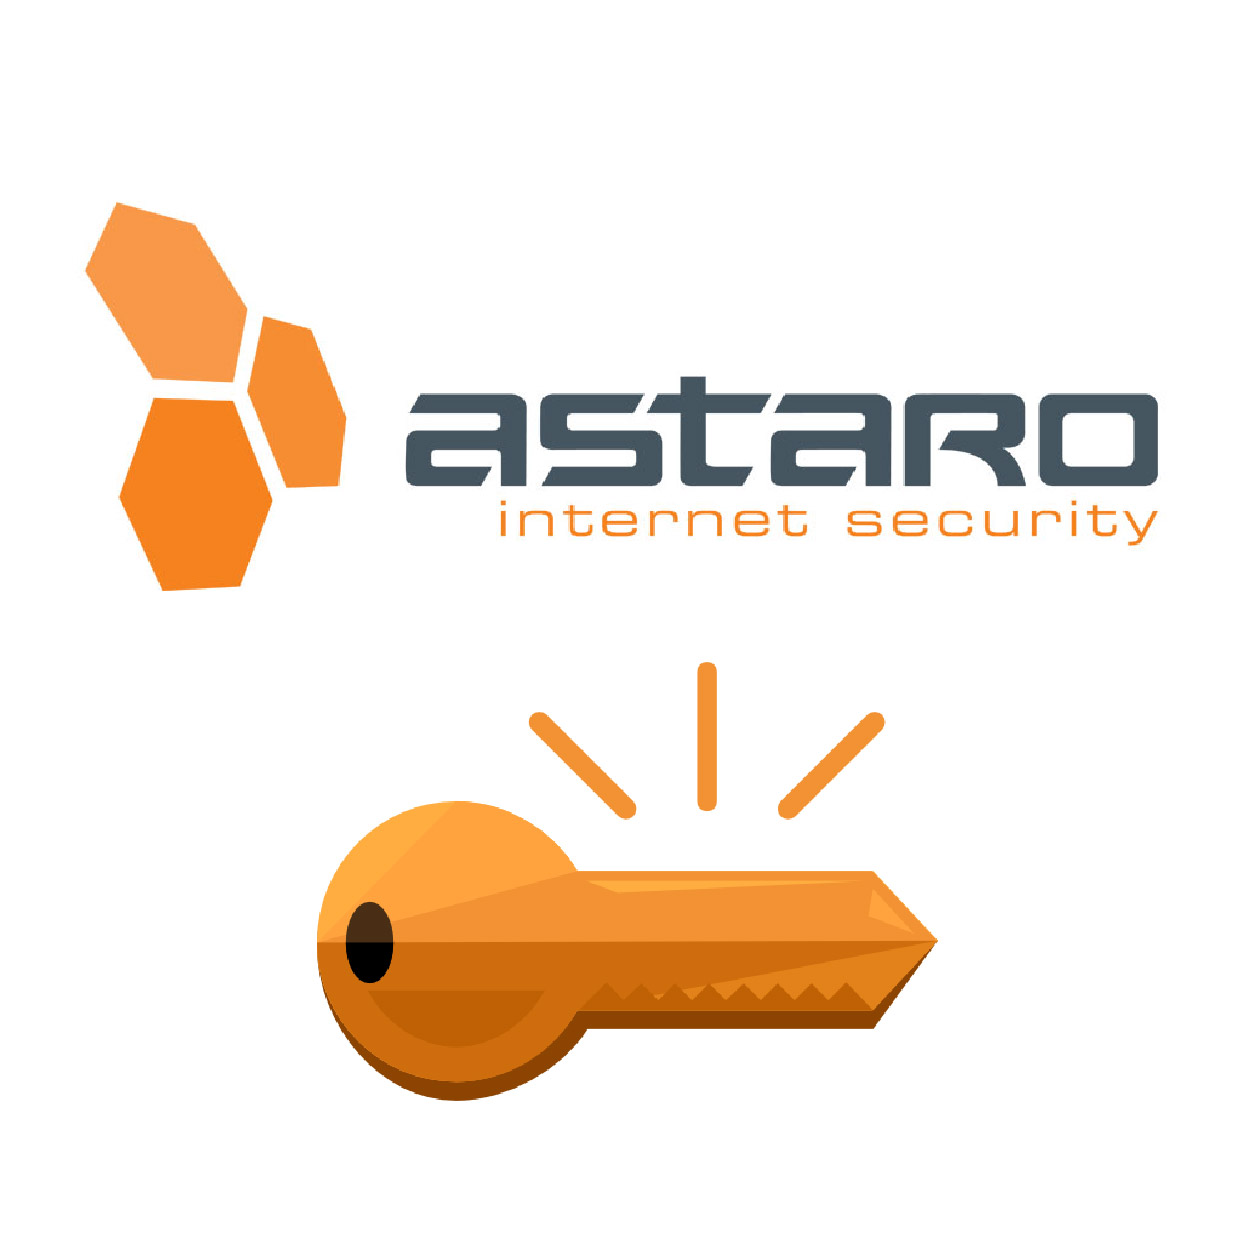 Astaro - Subscription Upgrading code for AWG 2000 with 1 Yr Mail  Including 1 Yr Gold Support ,Firewall